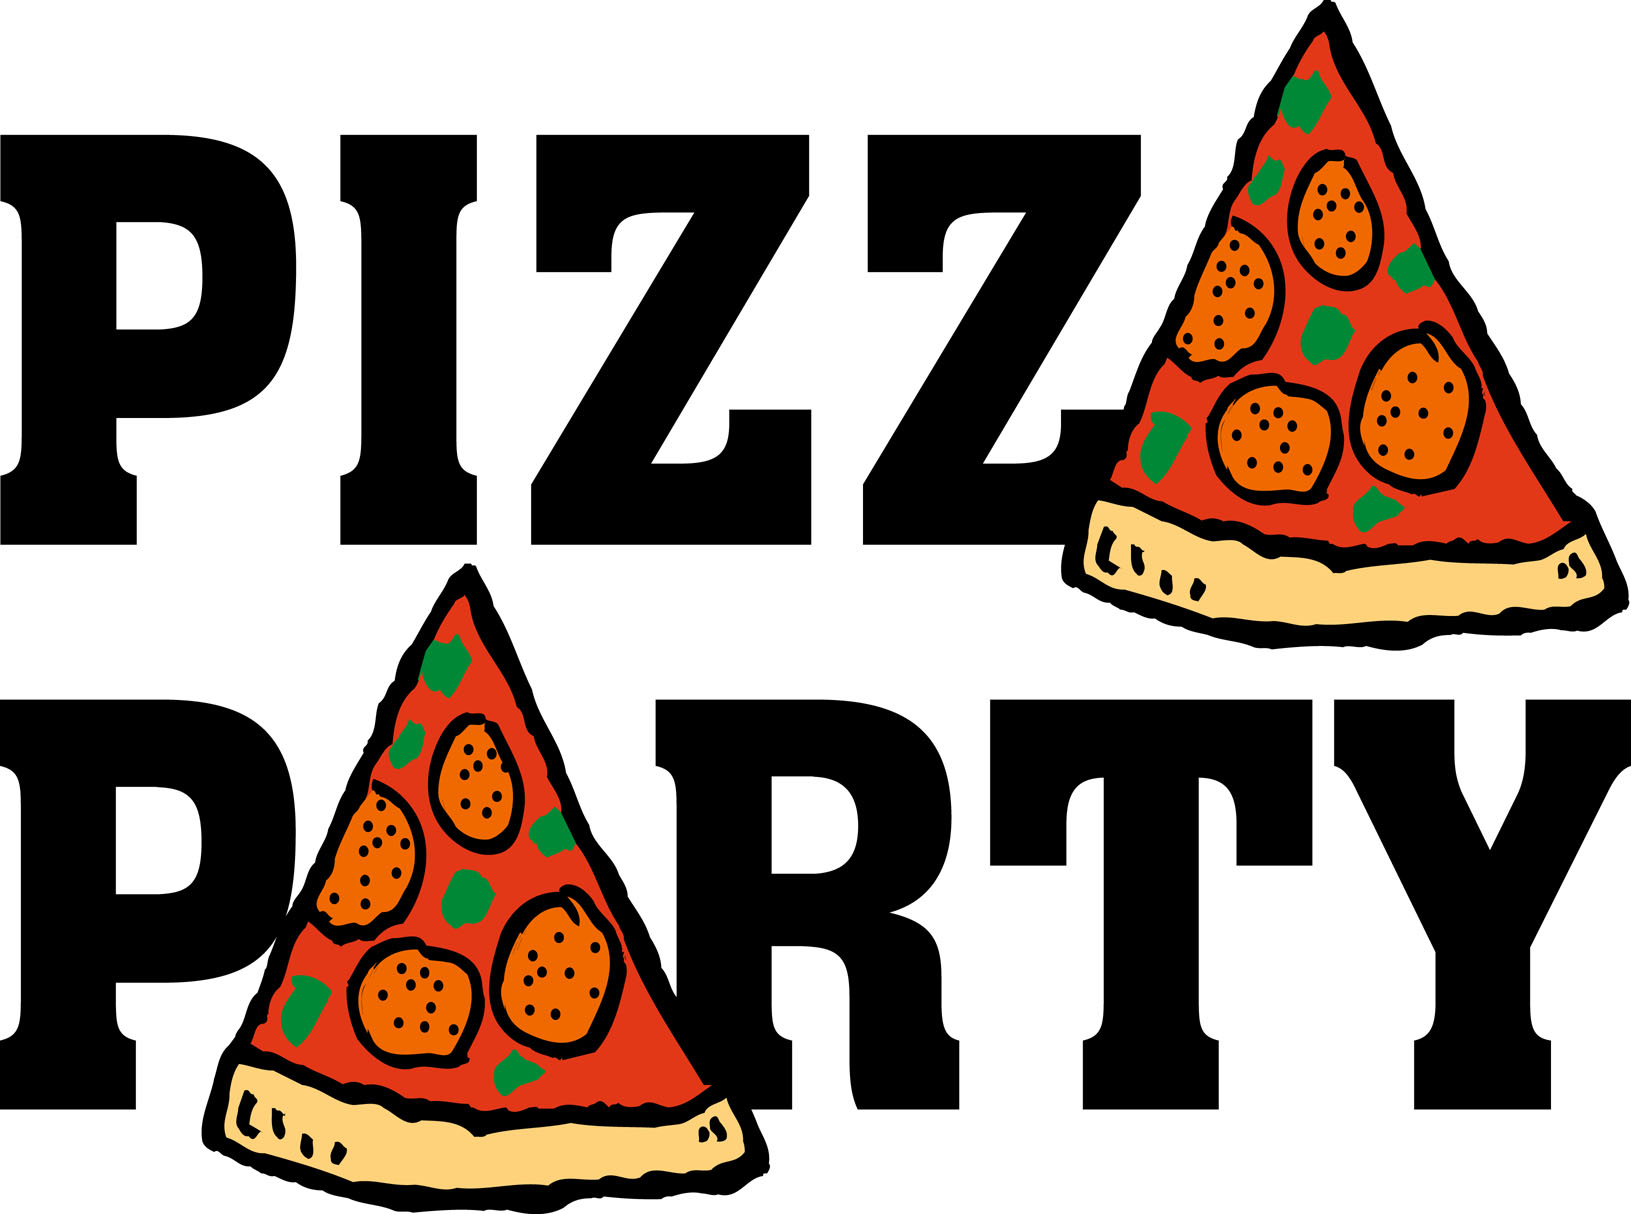 pizza party clip art viewing clipart panda free clipart images rh clipartpanda com pizza clip art free images pizza clipart free download